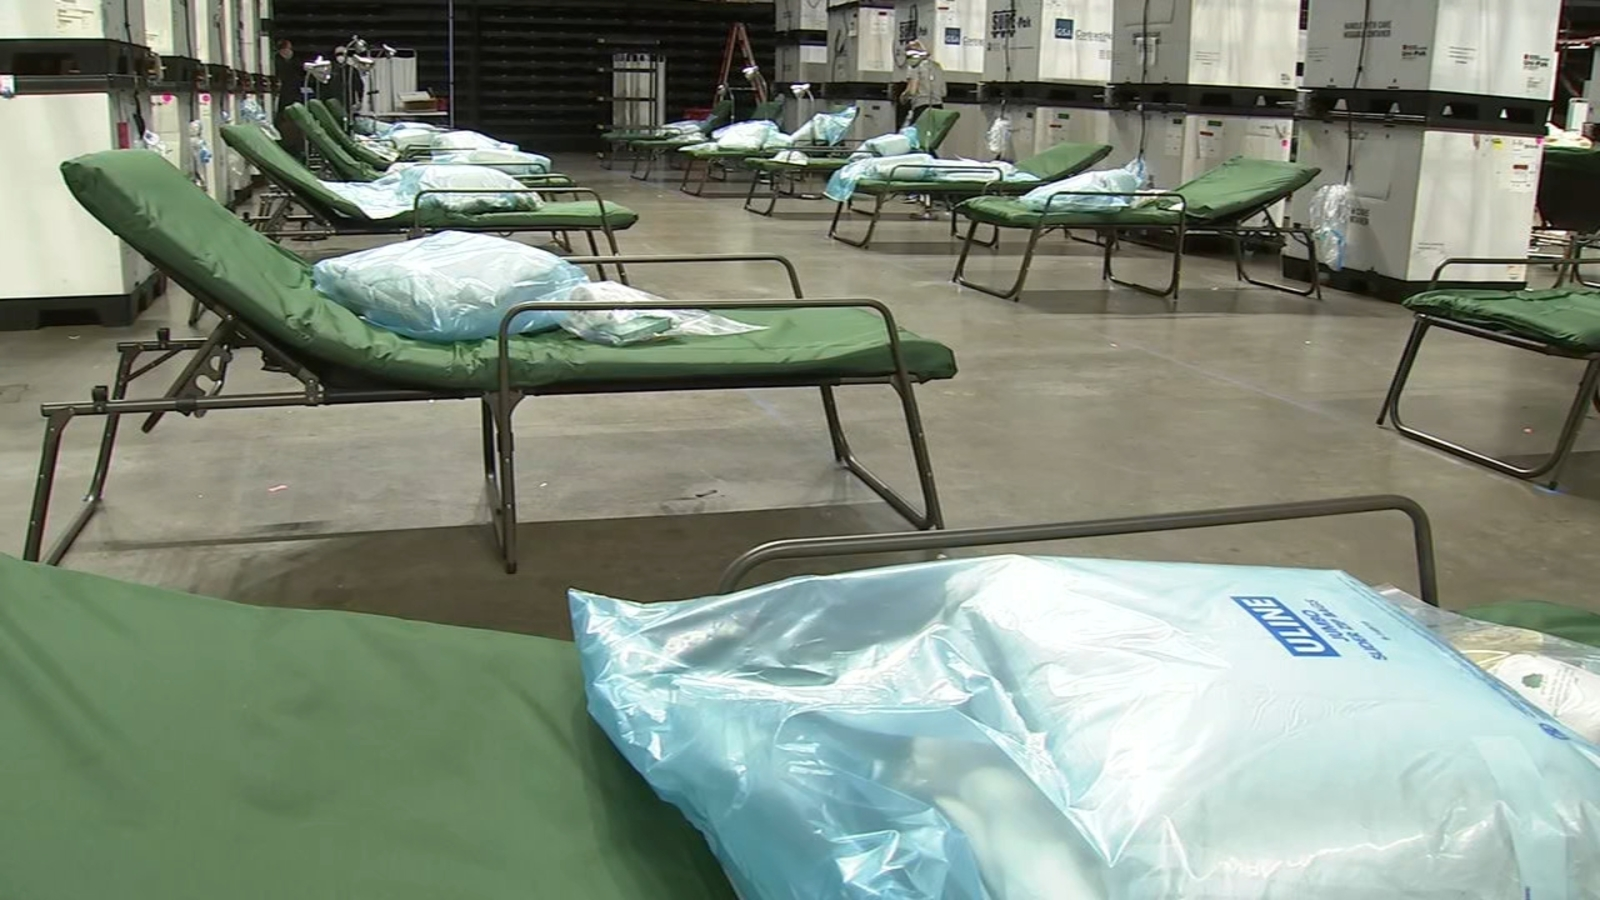 Officials: COVID-19 hospitalizations continue to rise in Philadelphia; 604 new cases reported